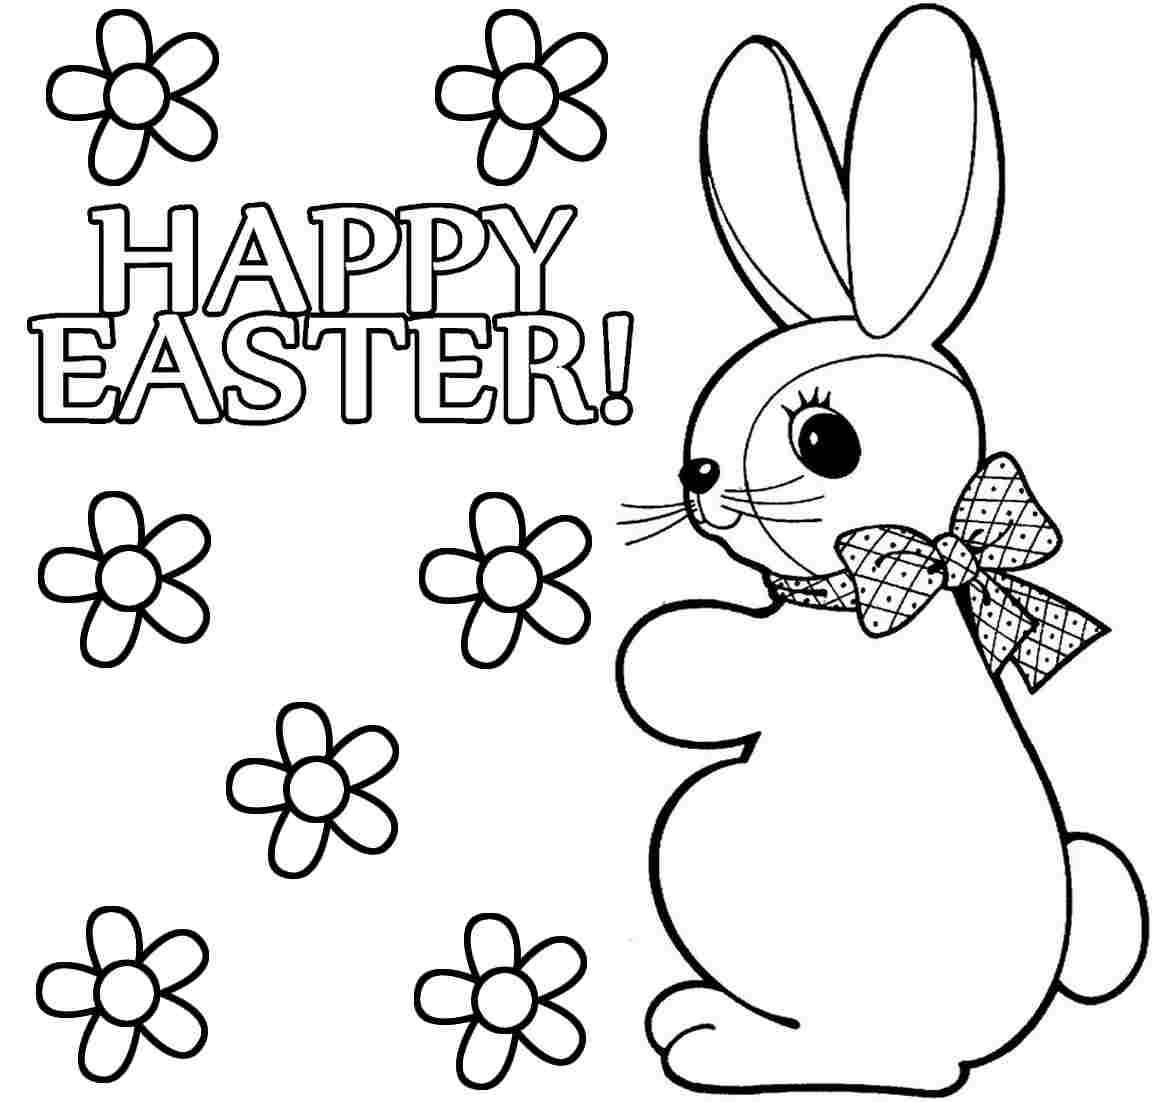 1152x1102 Nice Pictures Of Bunnies To Color Inside Easter Bunny